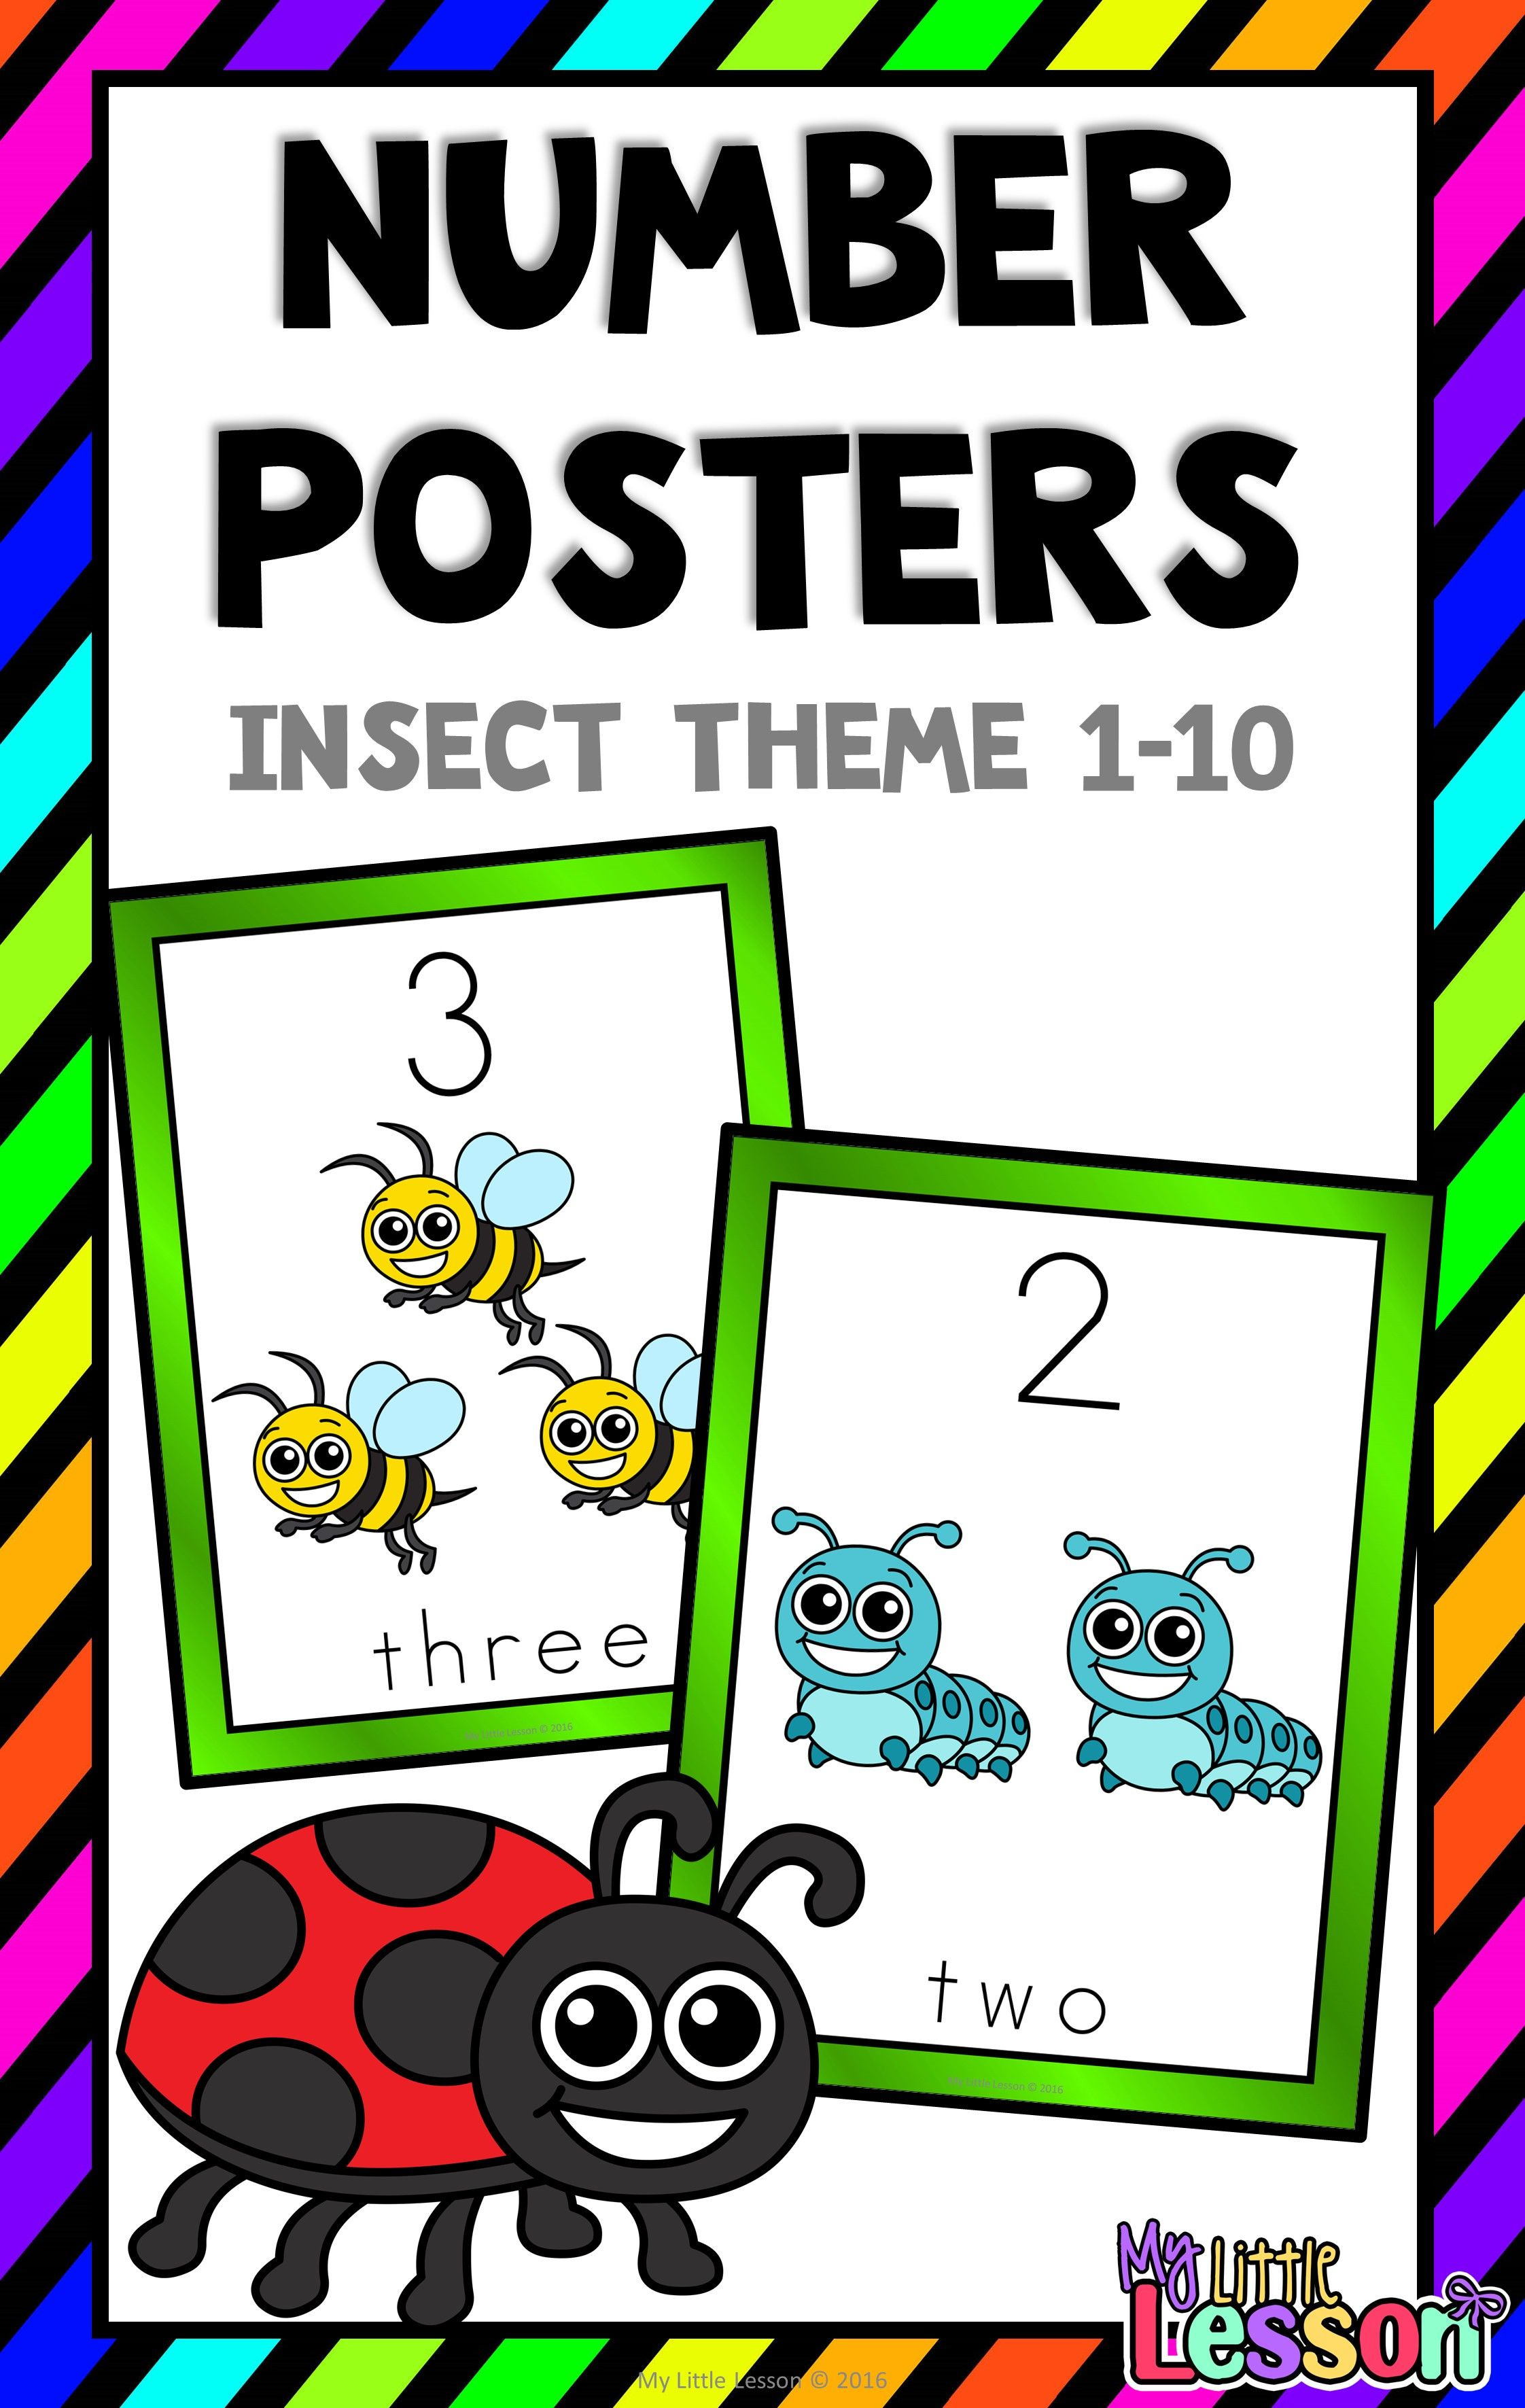 Number Posters 1 10 Insect Theme